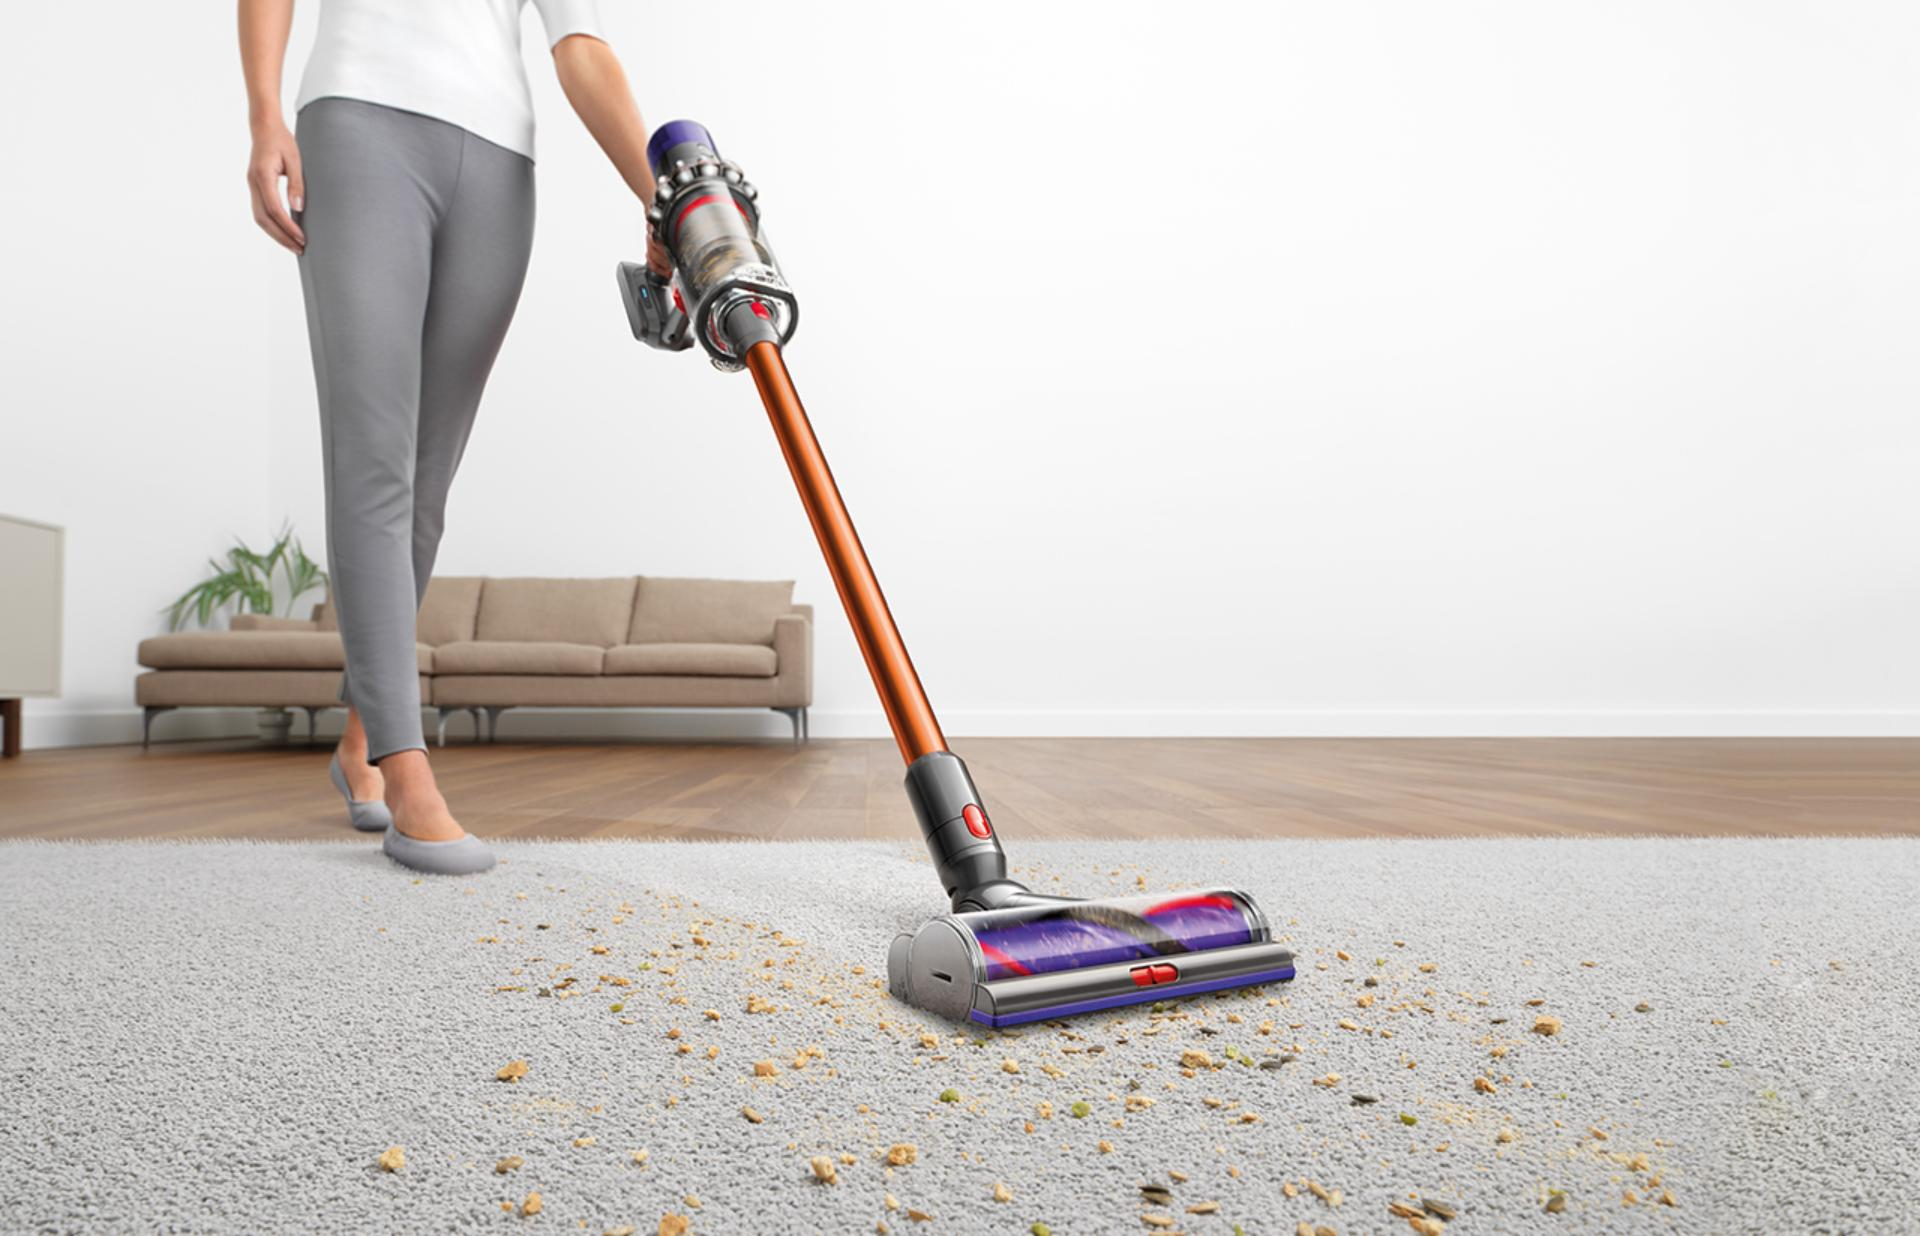 Dyson cyclone v10 being used on flooring